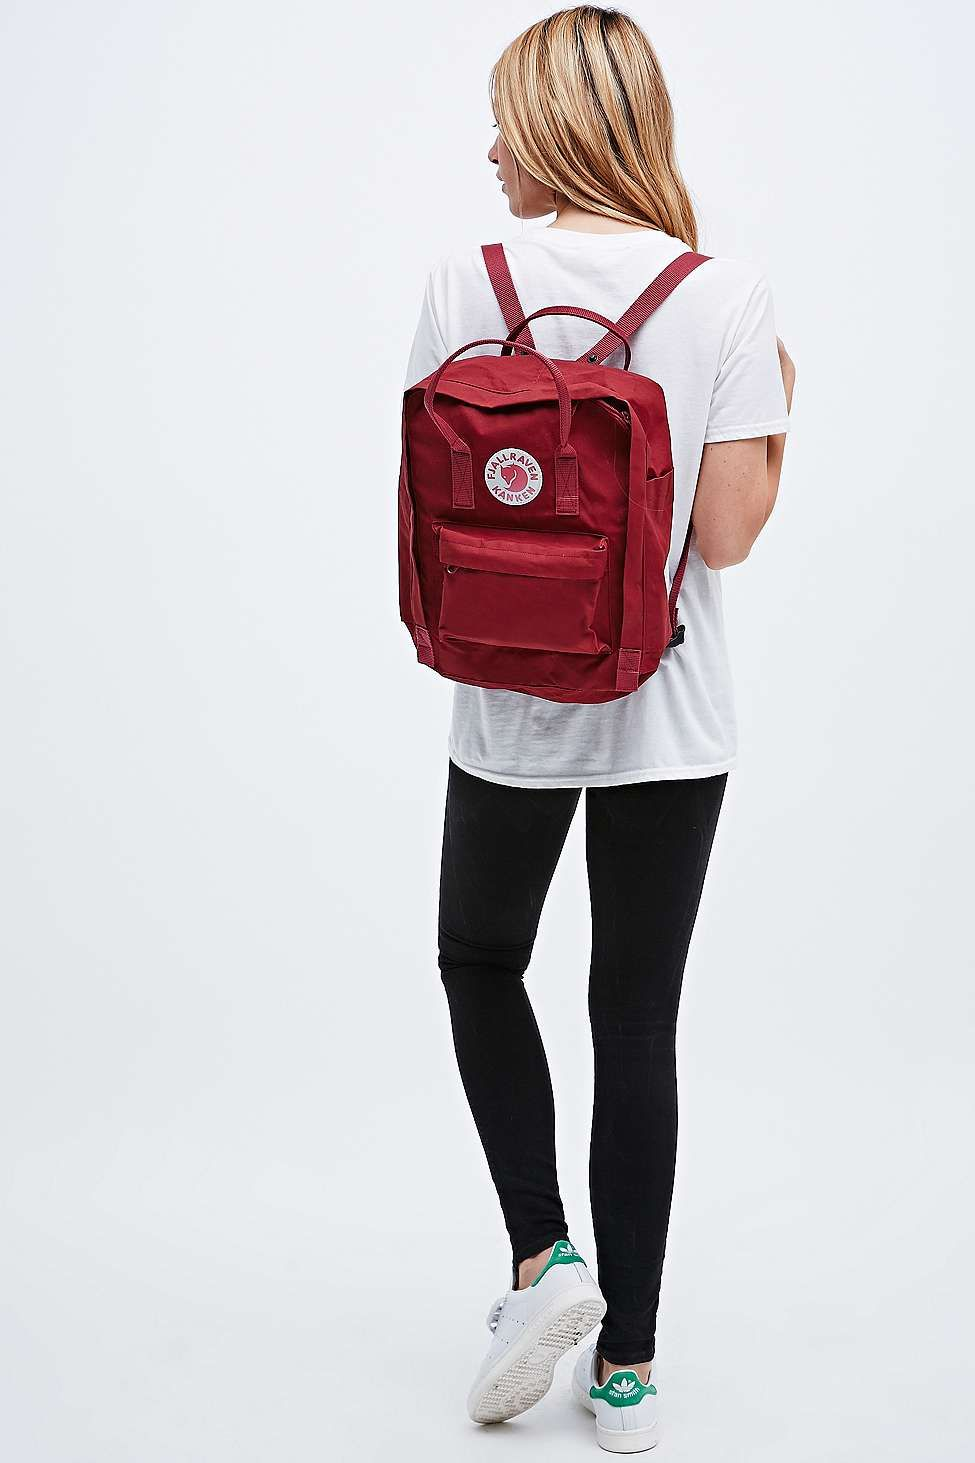 dae65b0d011 Fjallraven Kanken Classic Backpack in Ox Red - Urban Outfitters